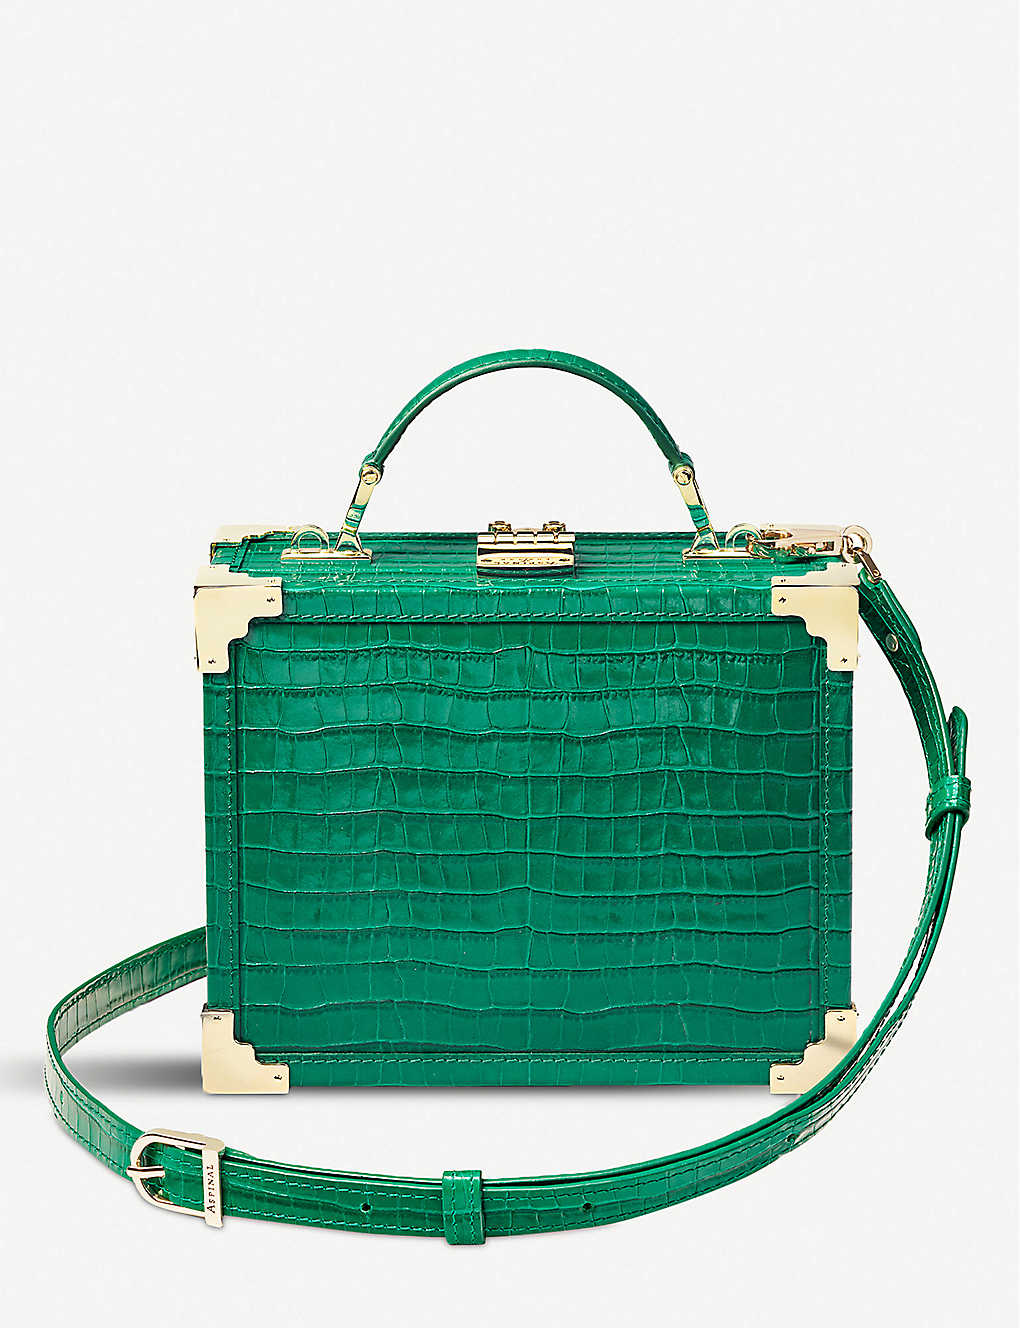 ASPINAL OF LONDON: The Trunk croc-embossed leather bag